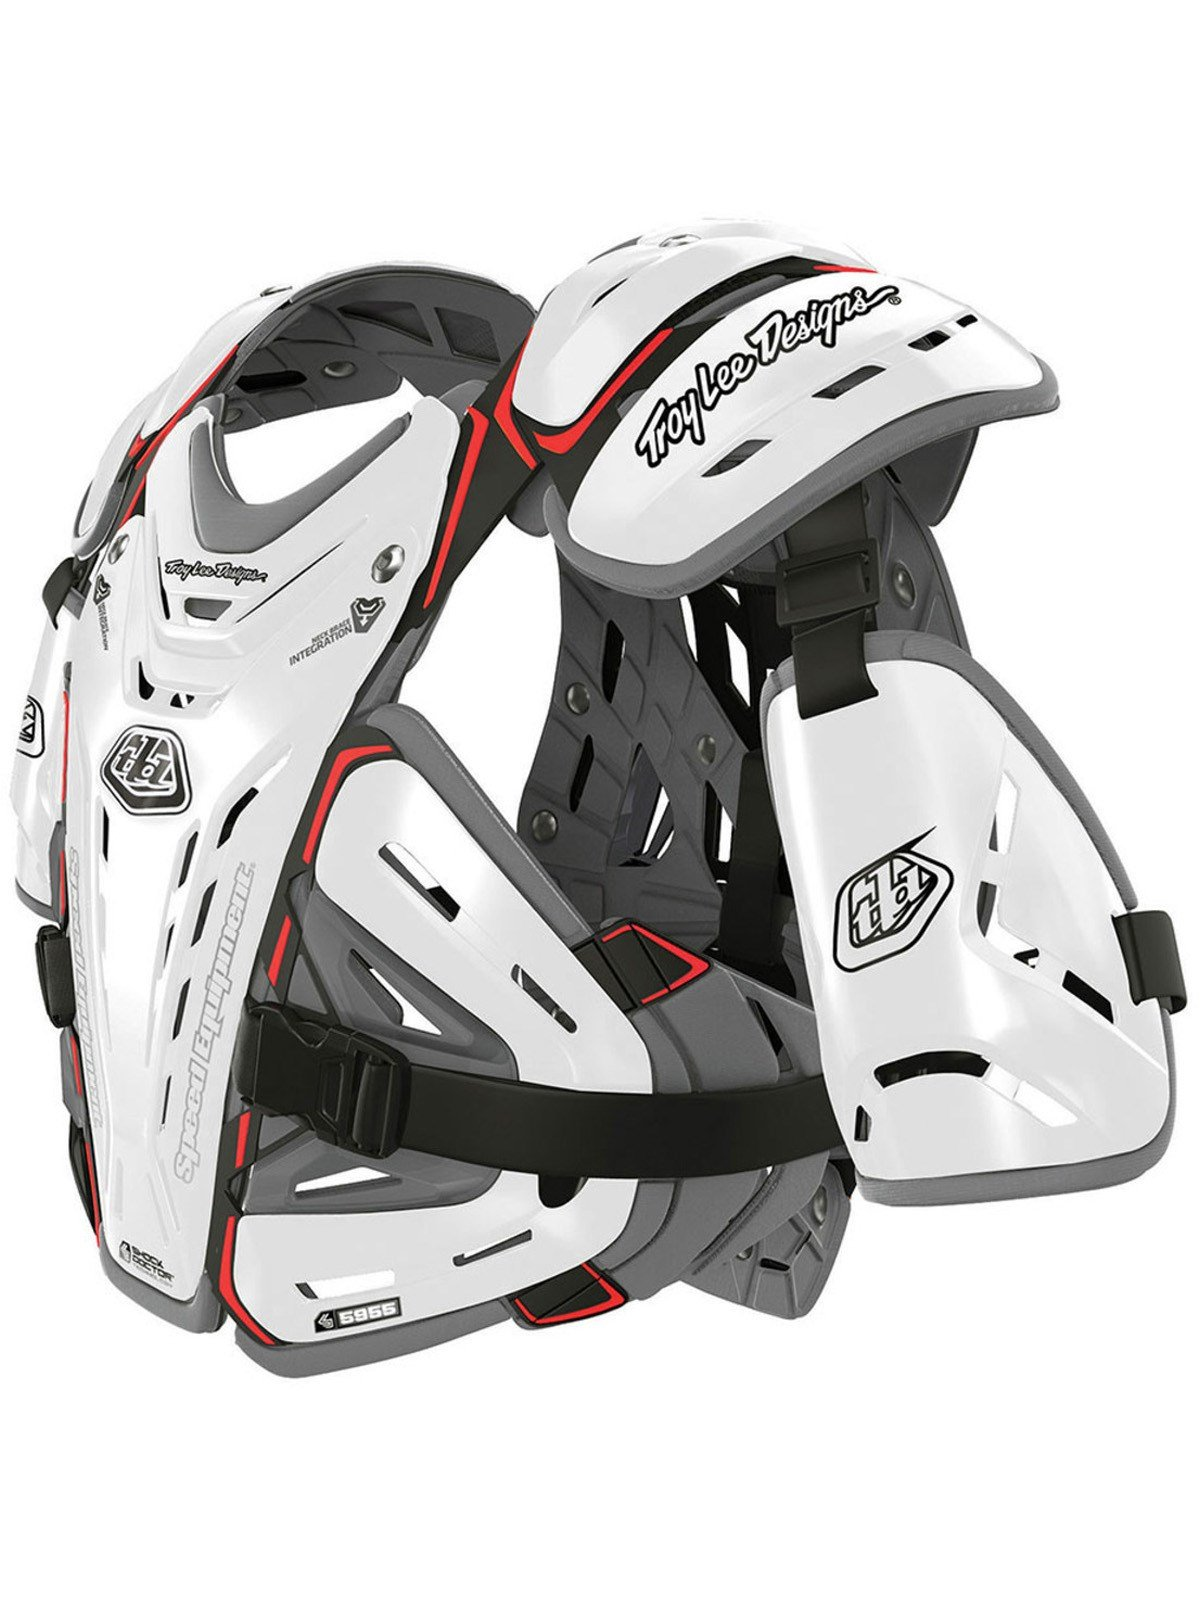 Troy Lee Designs 5955 Chest Body Guard-White-L by Troy Lee Designs (Image #1)